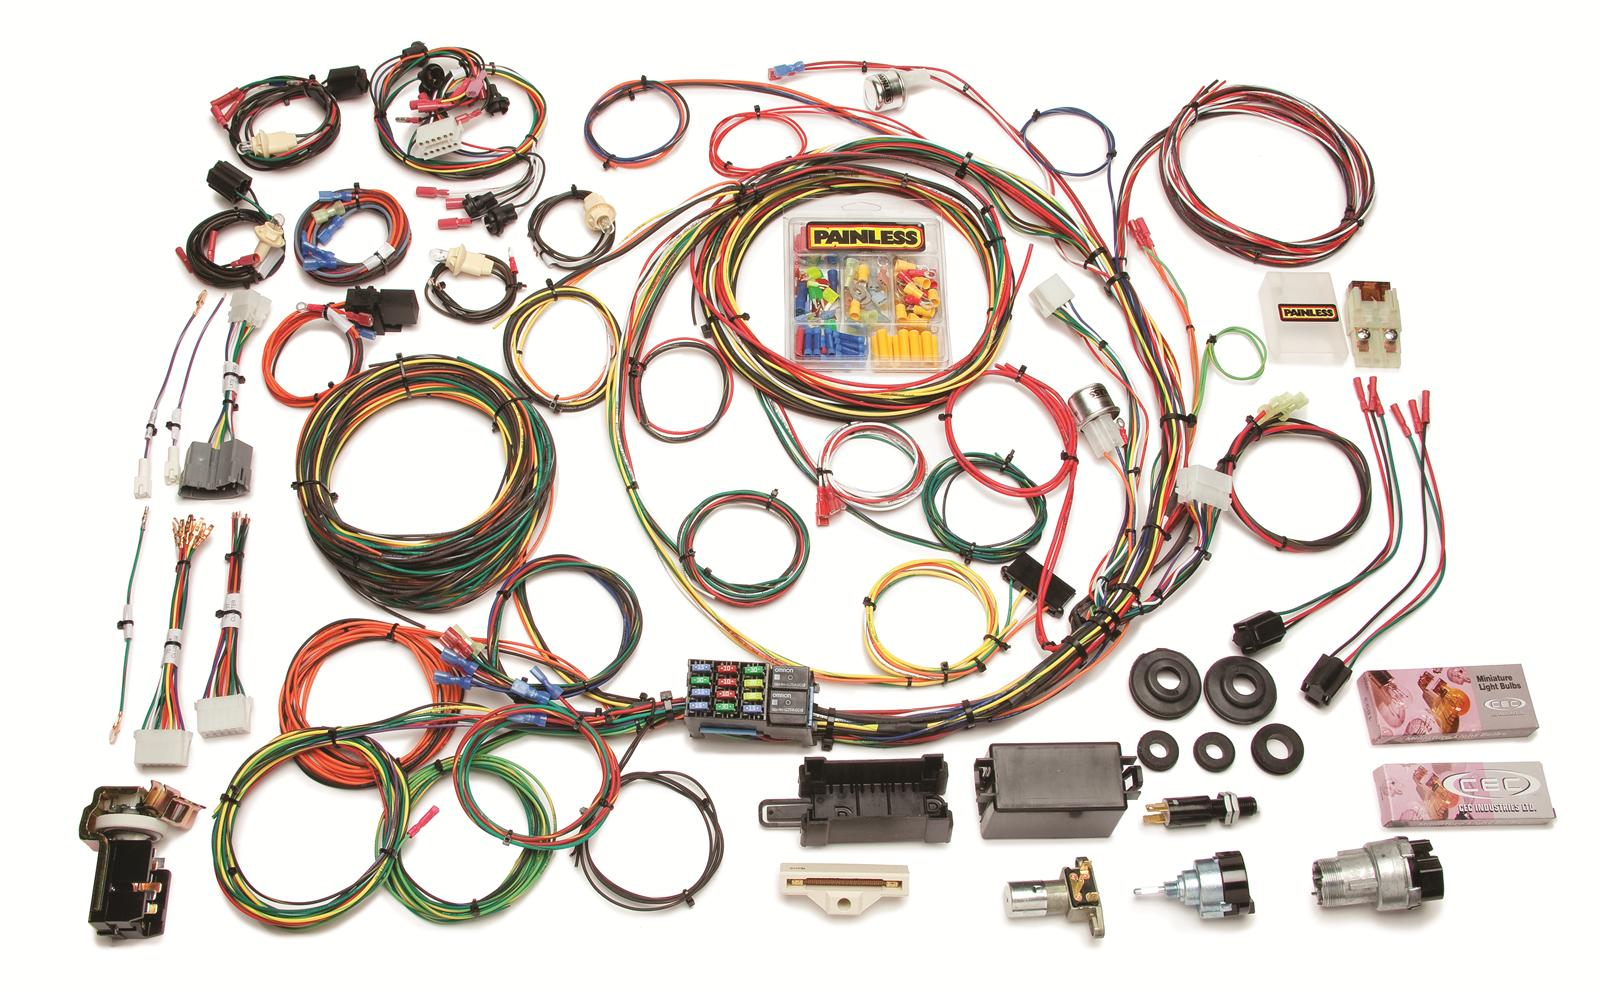 hight resolution of painless performance 21 circuit 1967 1977 direct fit ford f series 1985 dodge truck wiring harness 77 dodge truck wiring harness painless